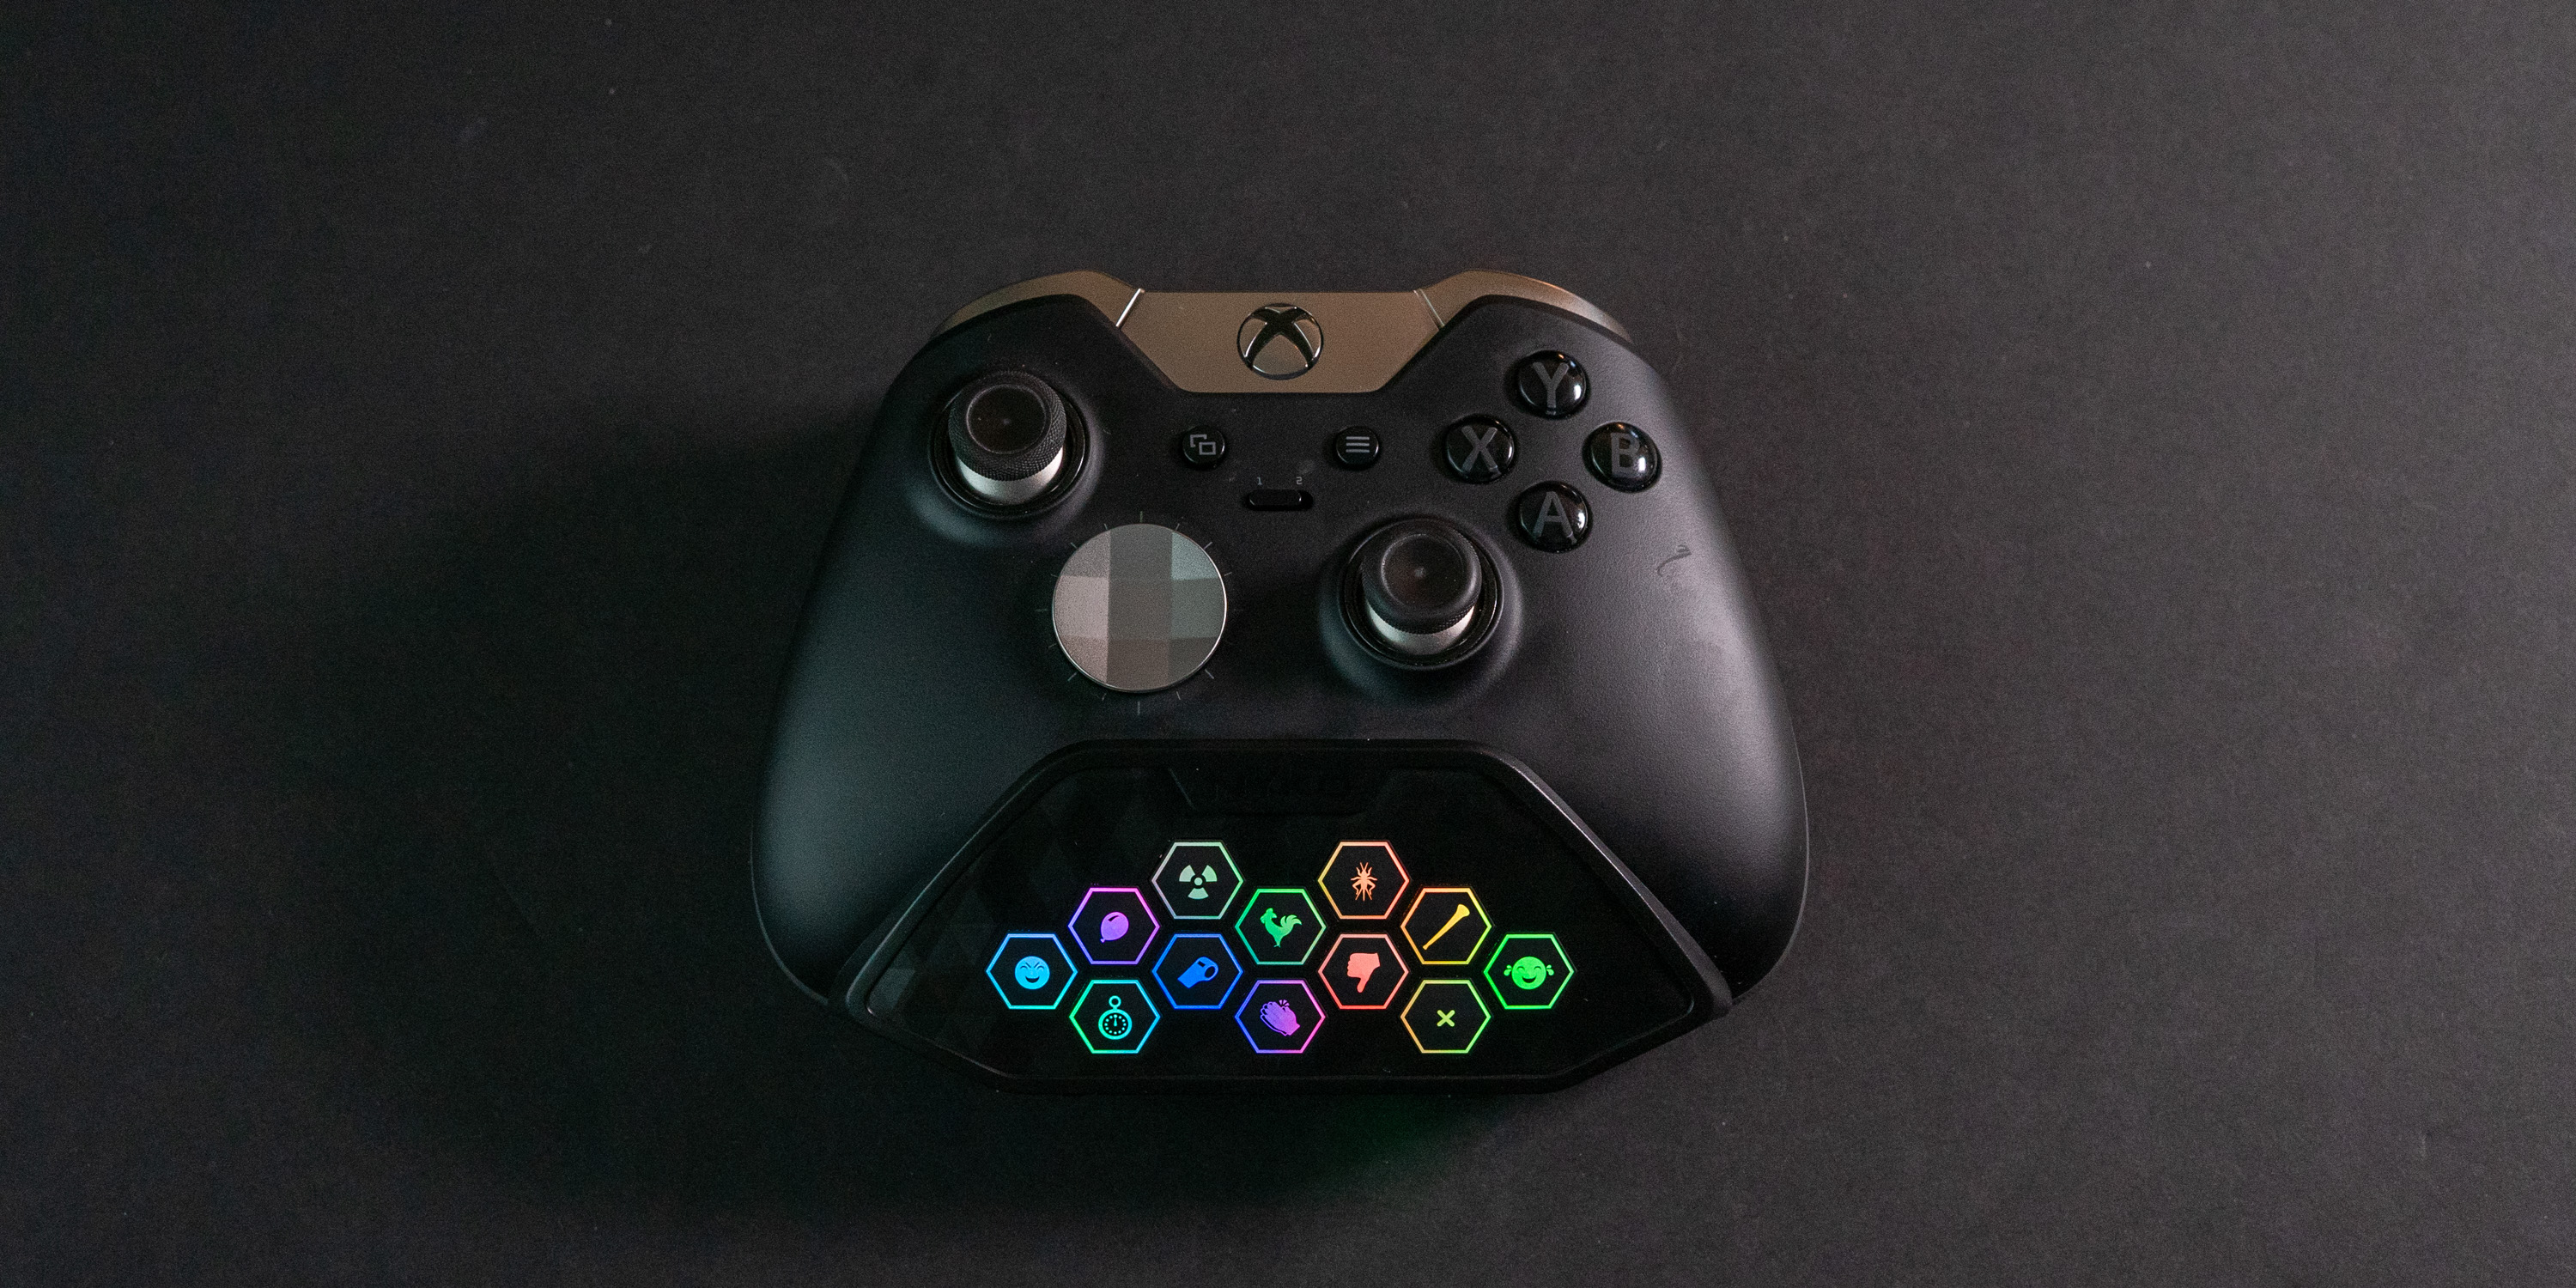 Nyko Sound Pad installed on Xbox One controller